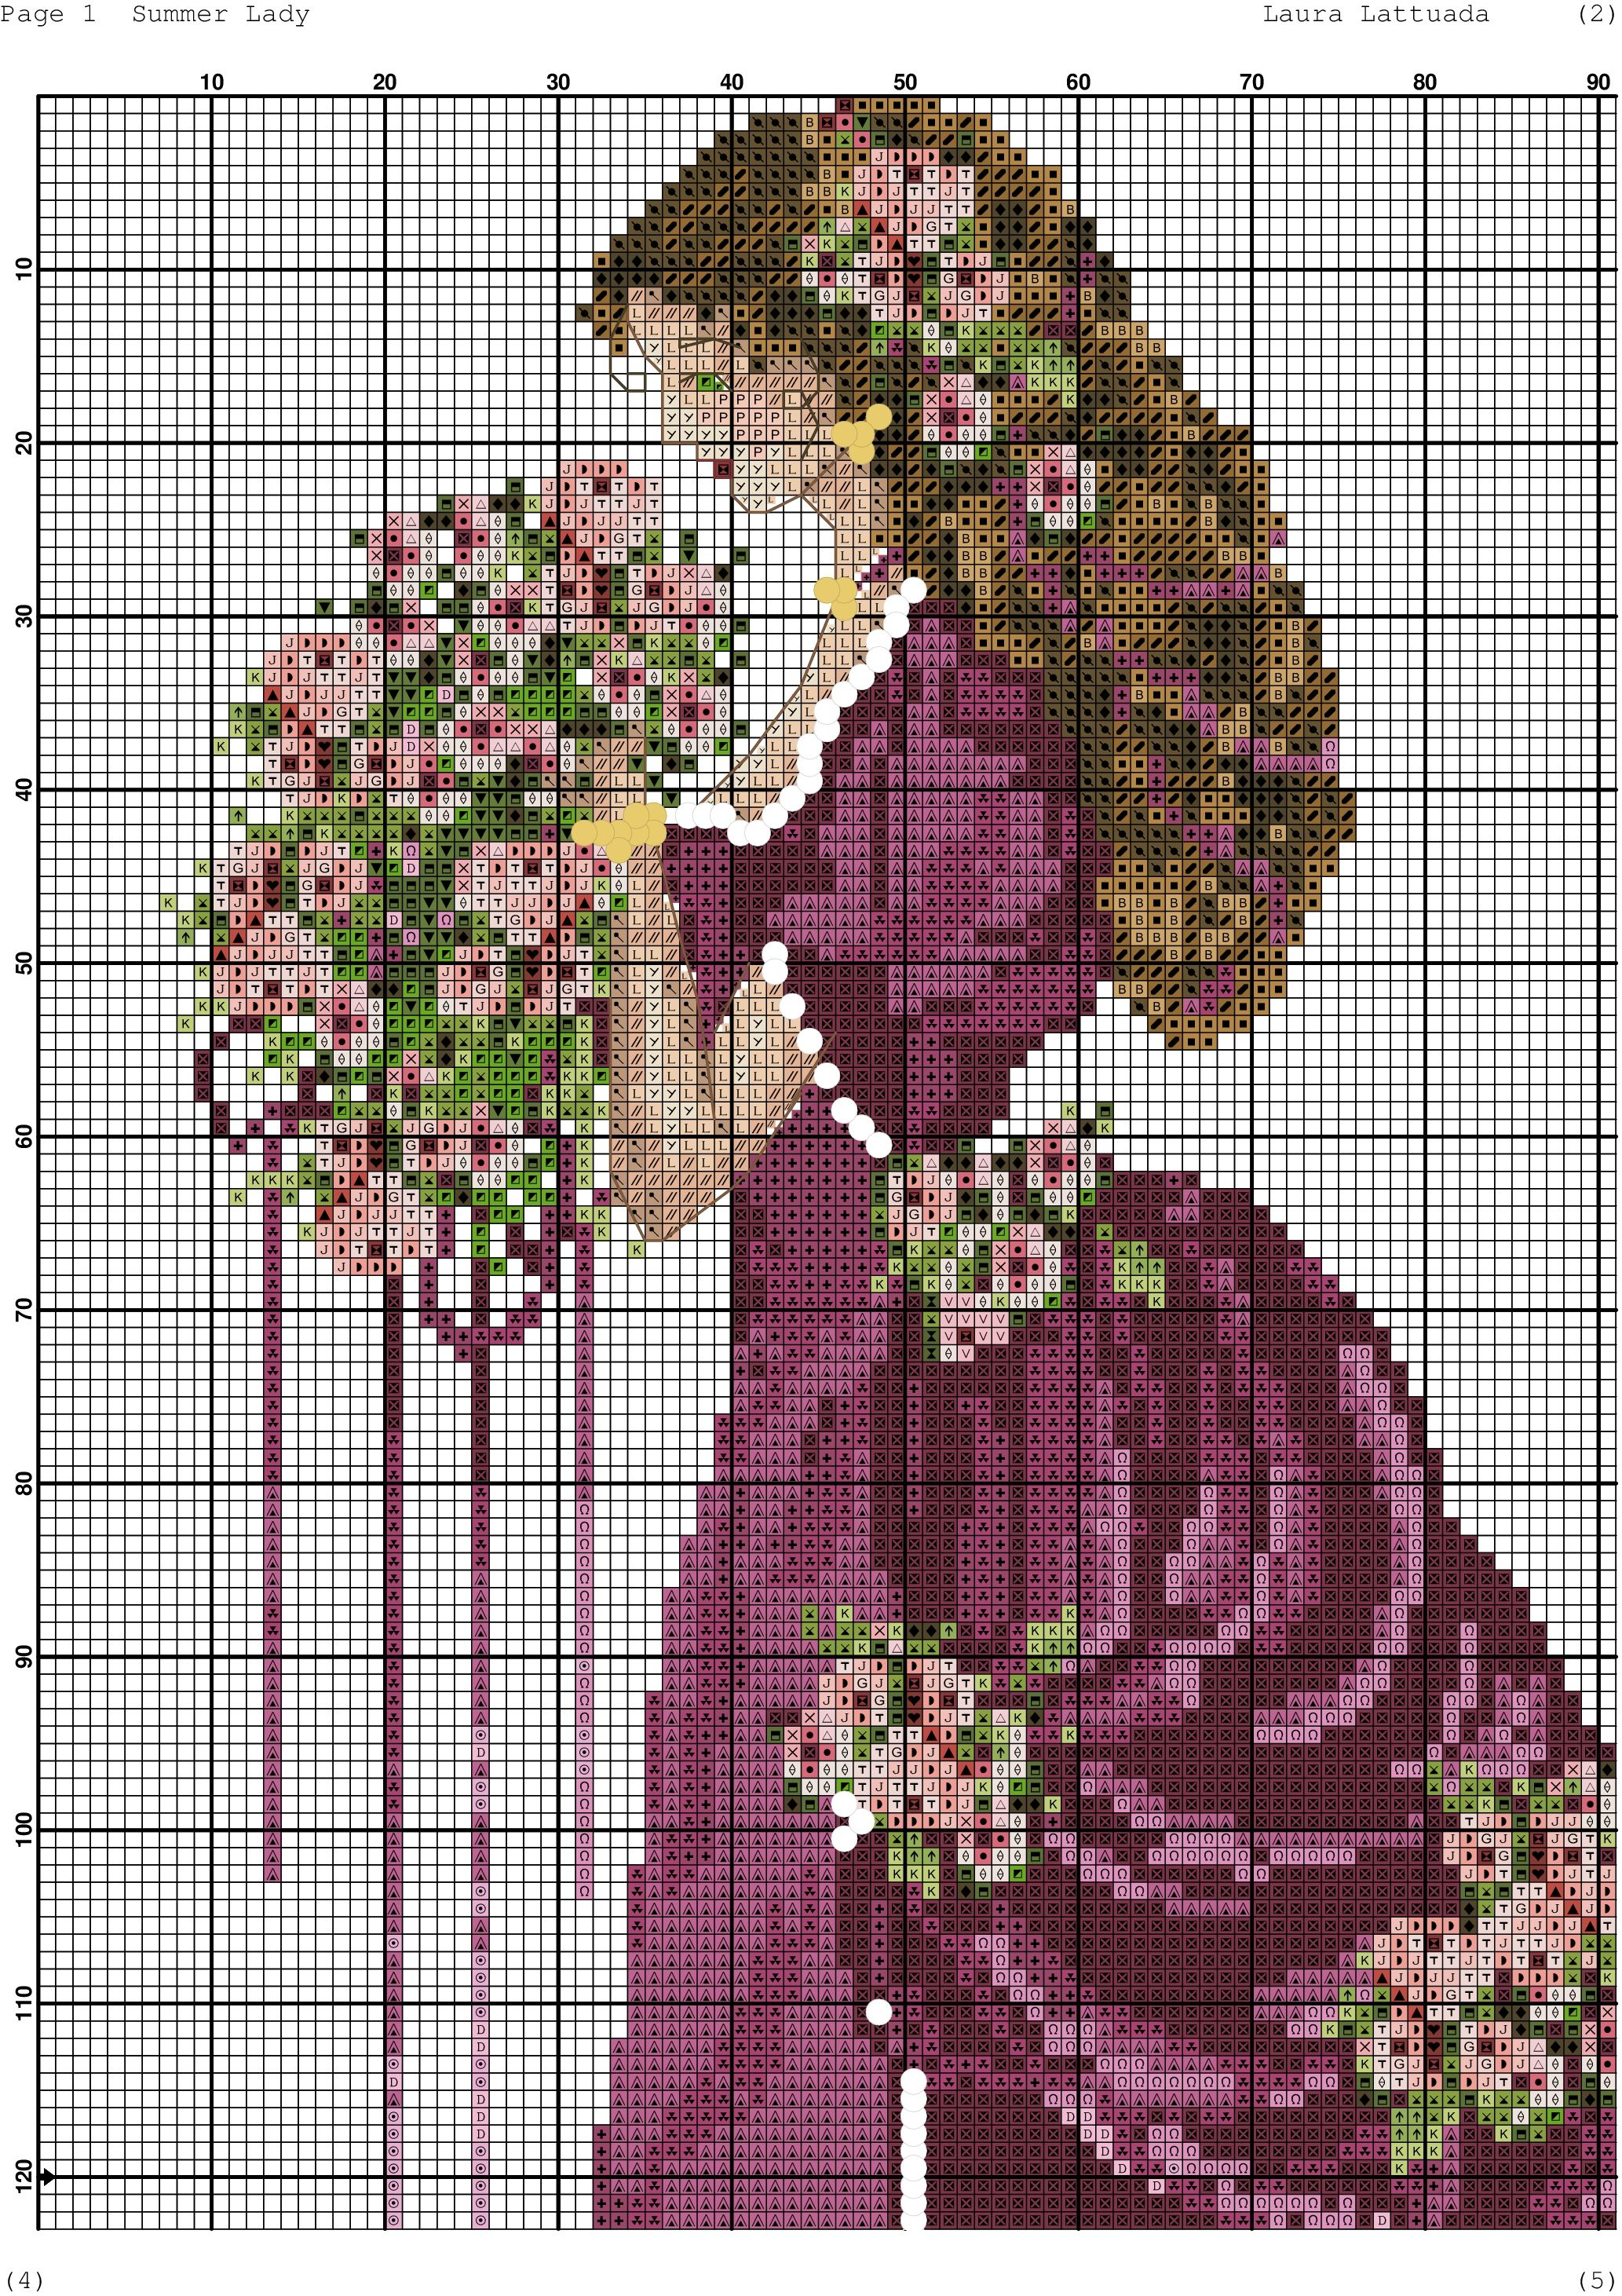 Pin by sery gonzalez on punto de cruz pinterest cross stitch